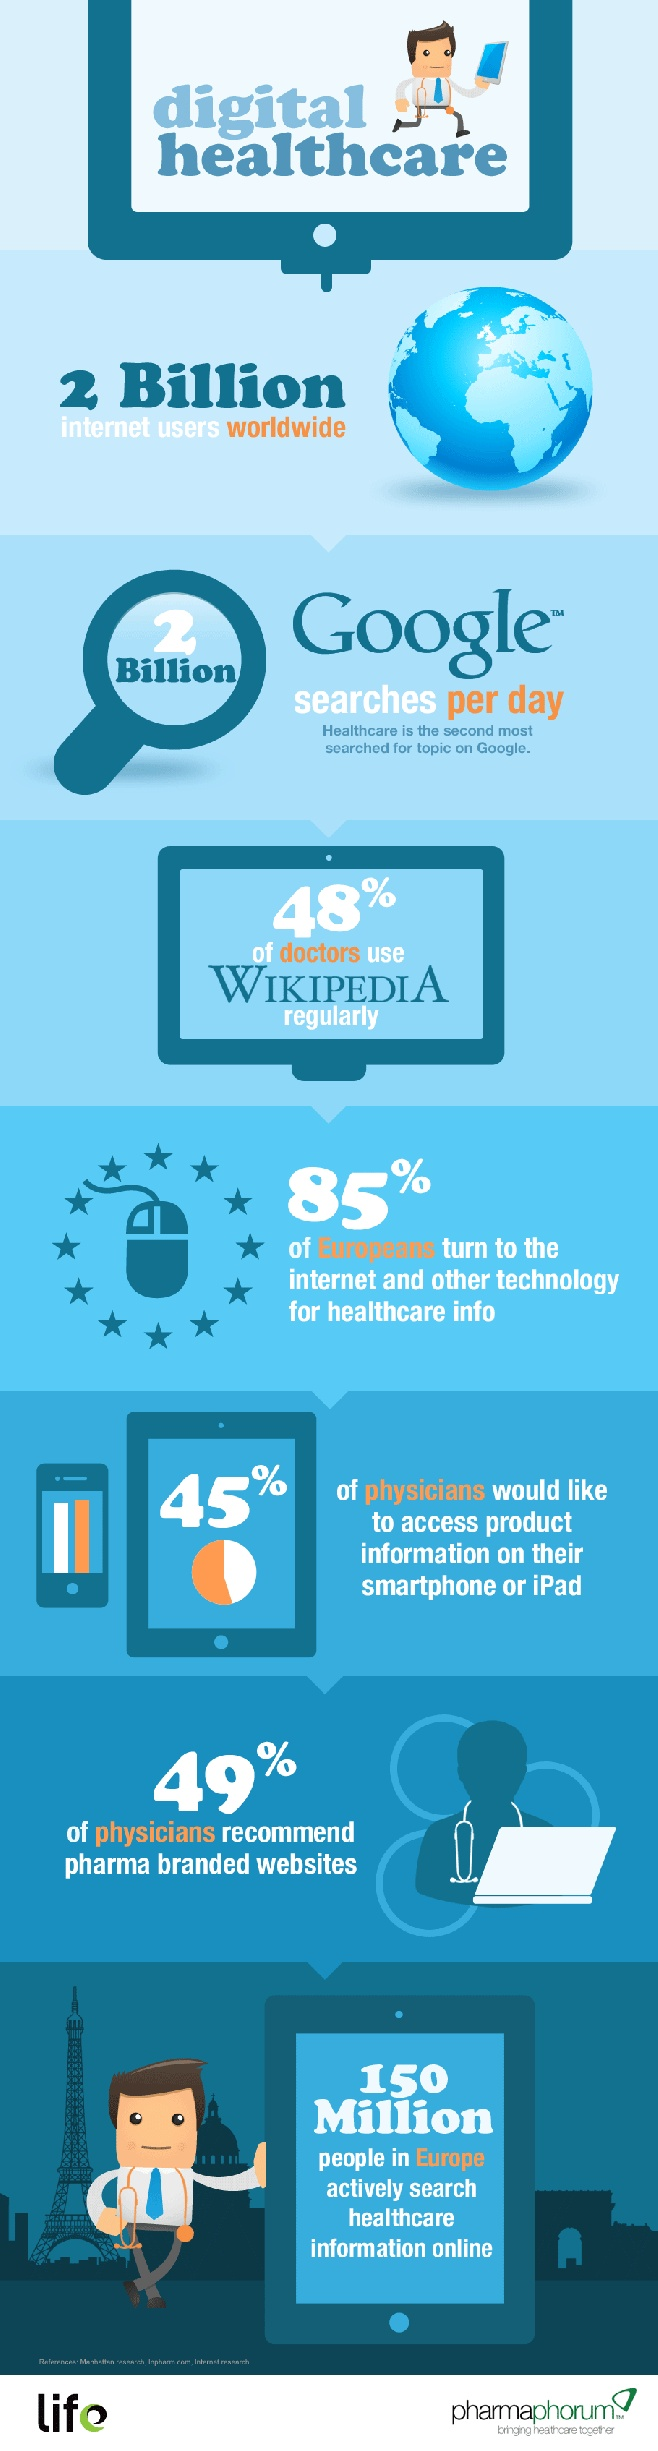 Digital #Healthcare Overview #ehealth